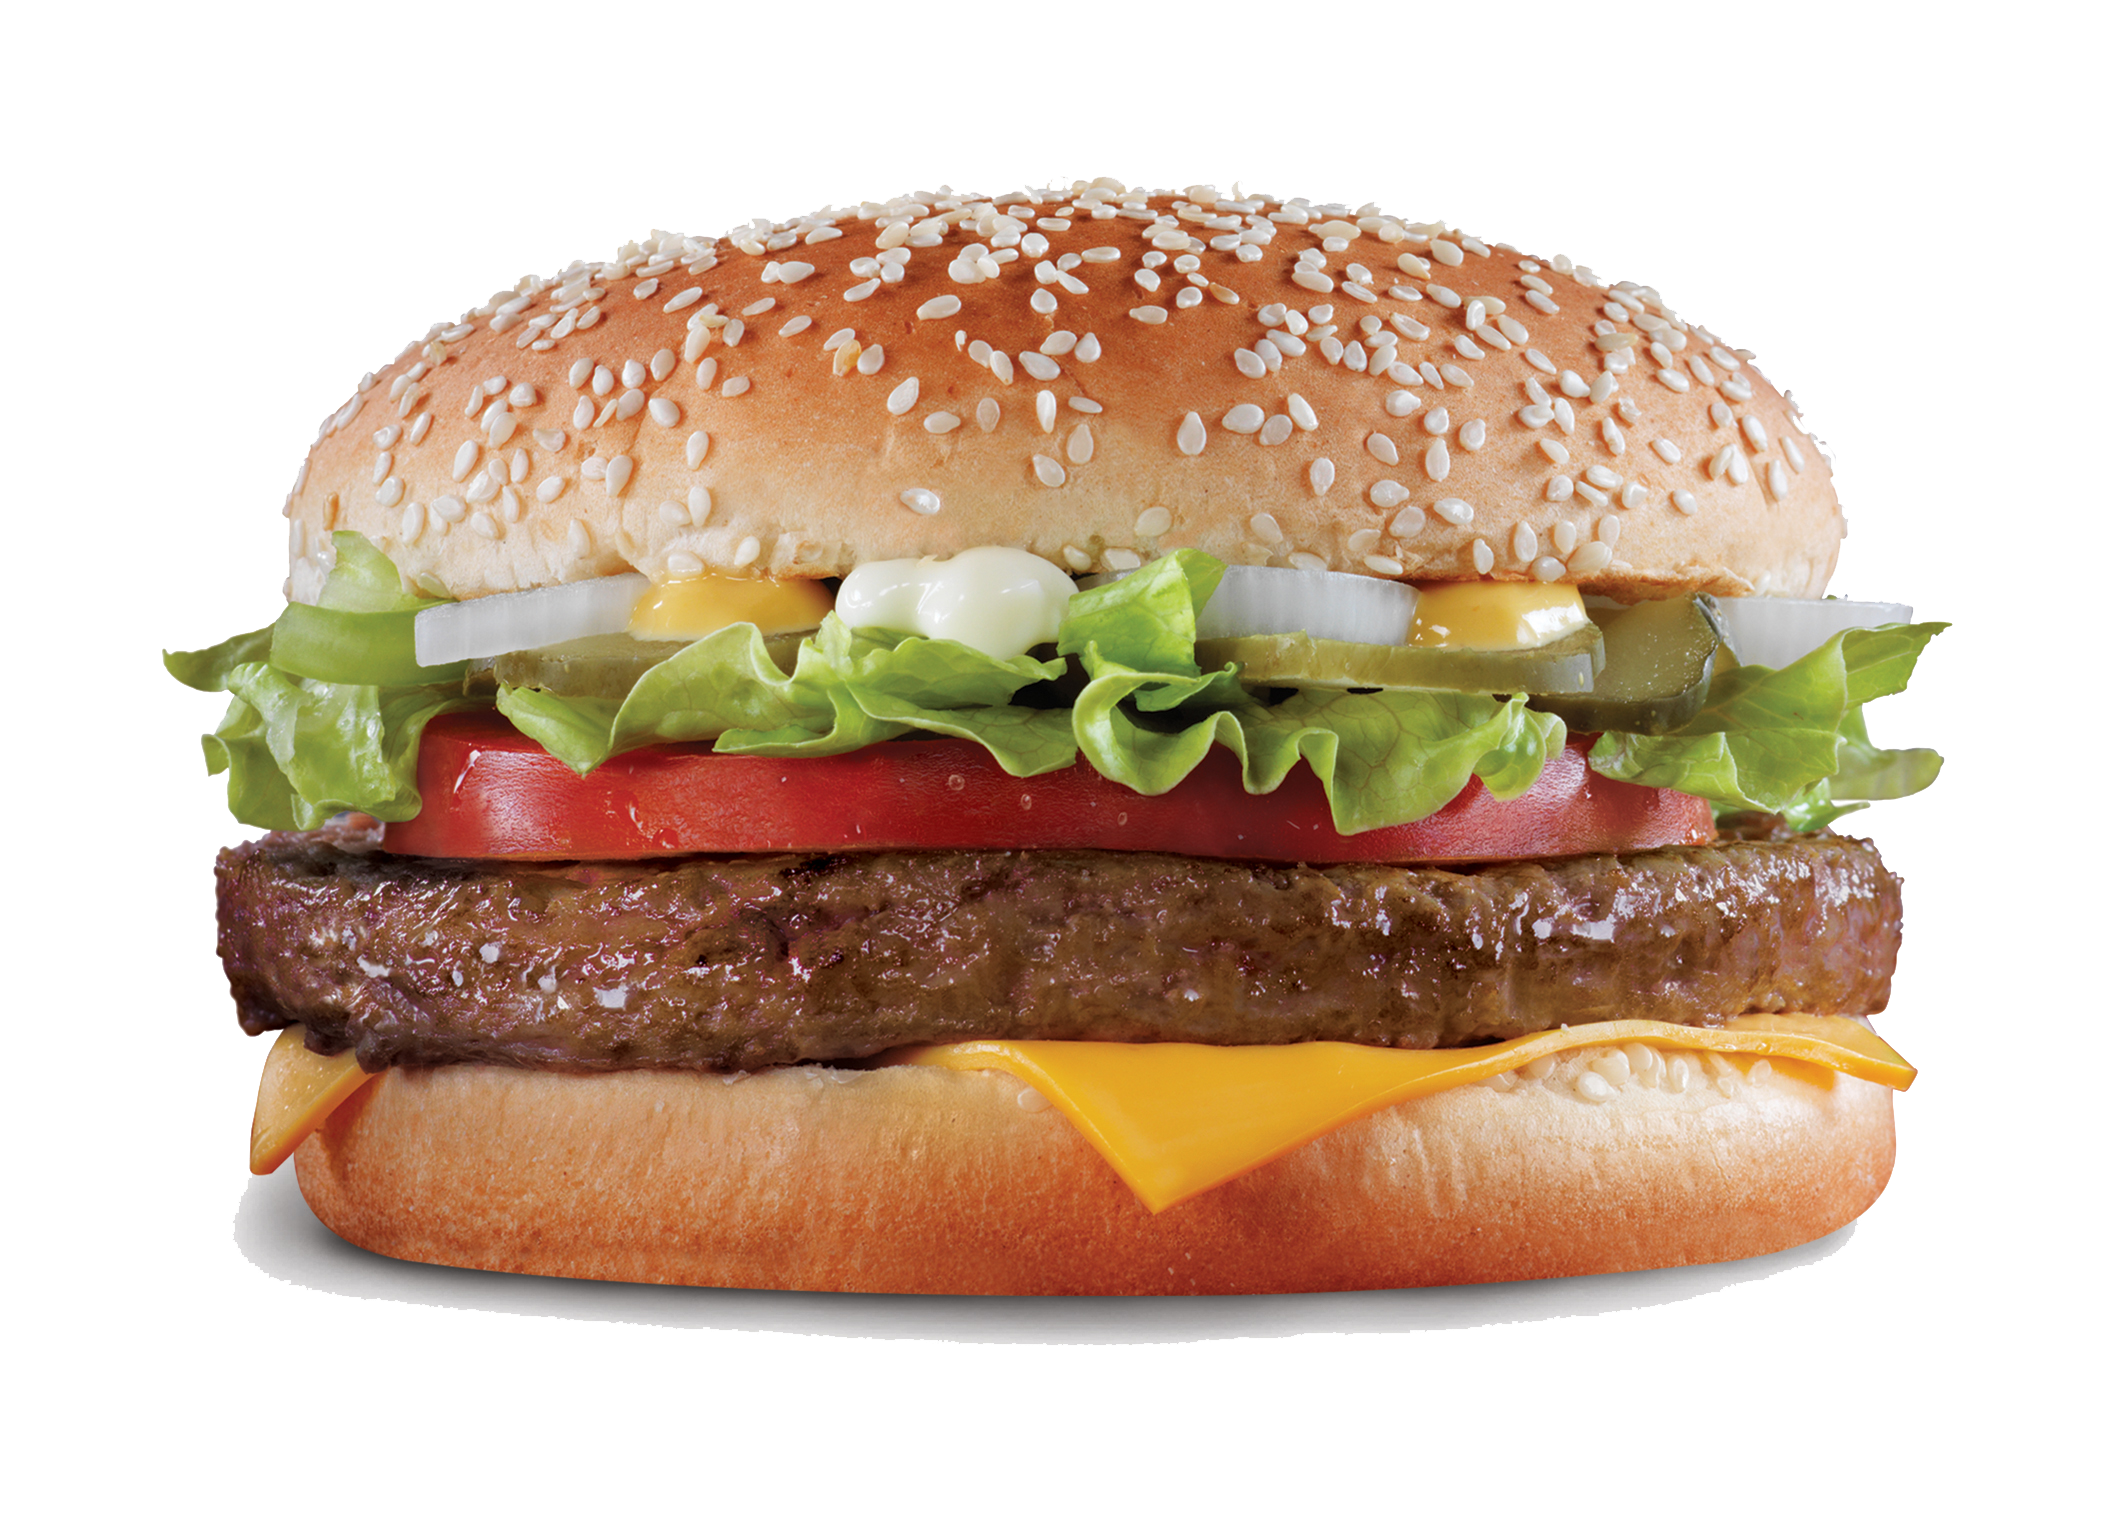 Burger Free Download Png PNG